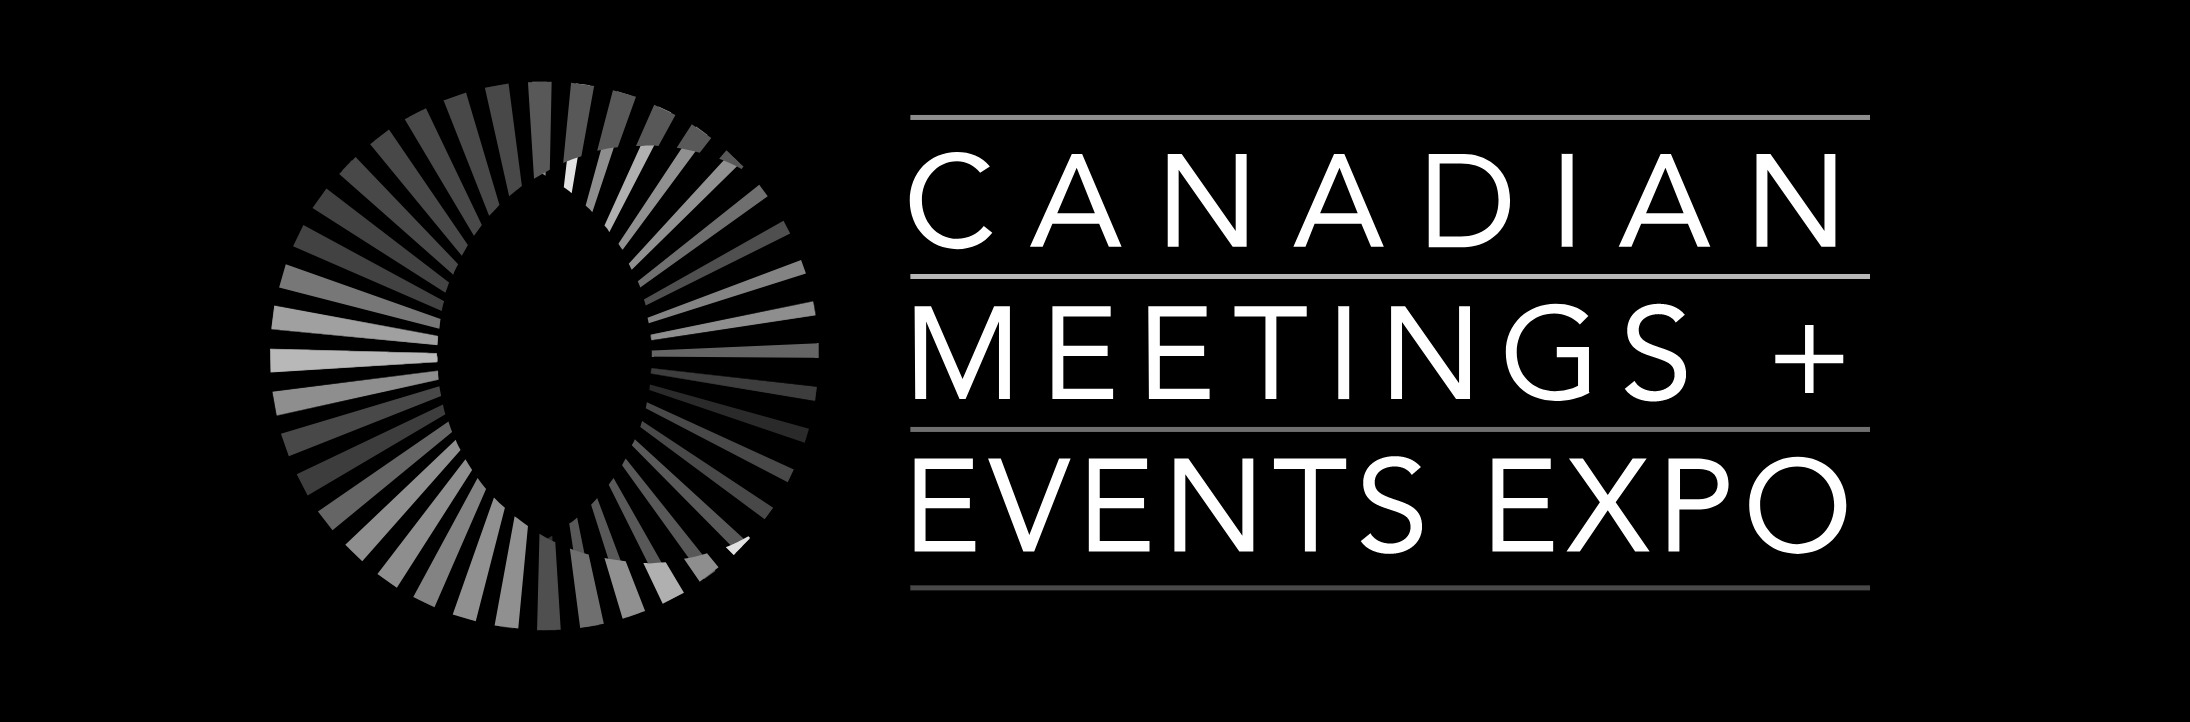 August 13-14: Canadian Meetings & Events Expo